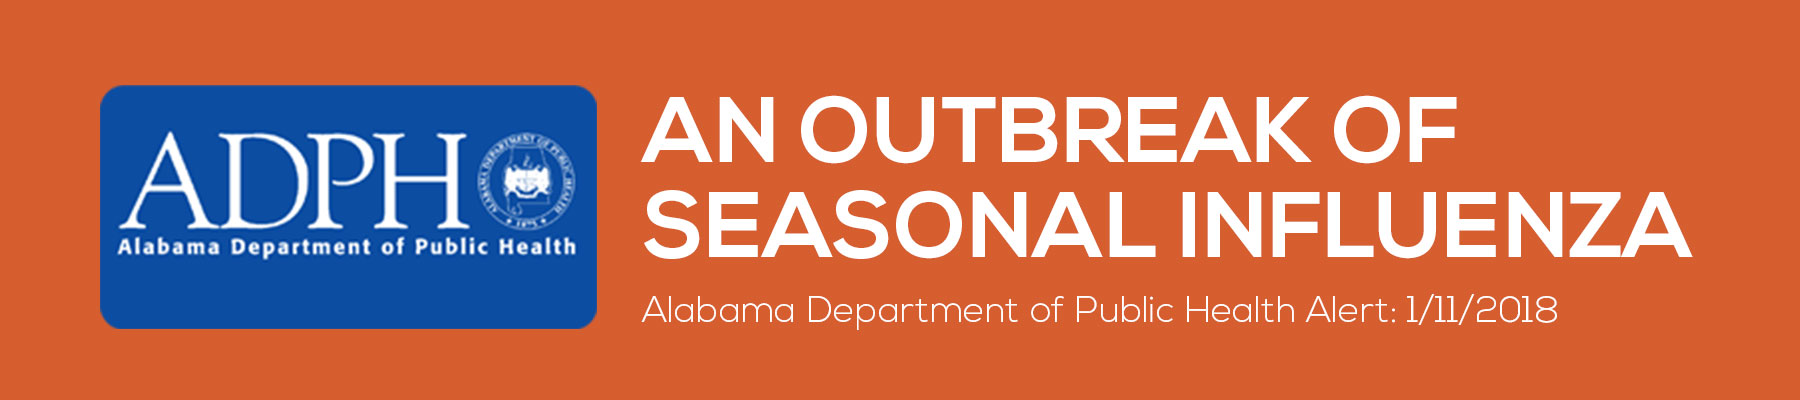 alabama department of public health. An outbreak of seasonal influenza health alert 1/11/2018